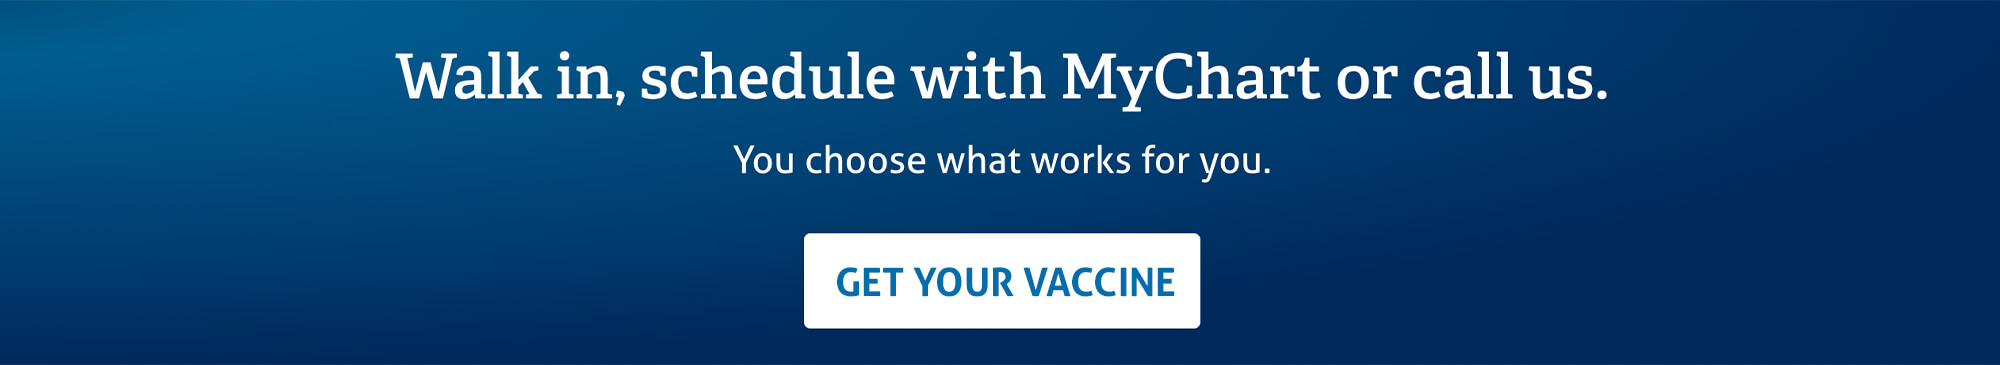 Go to the COVID-19 vaccine scheduling landing page